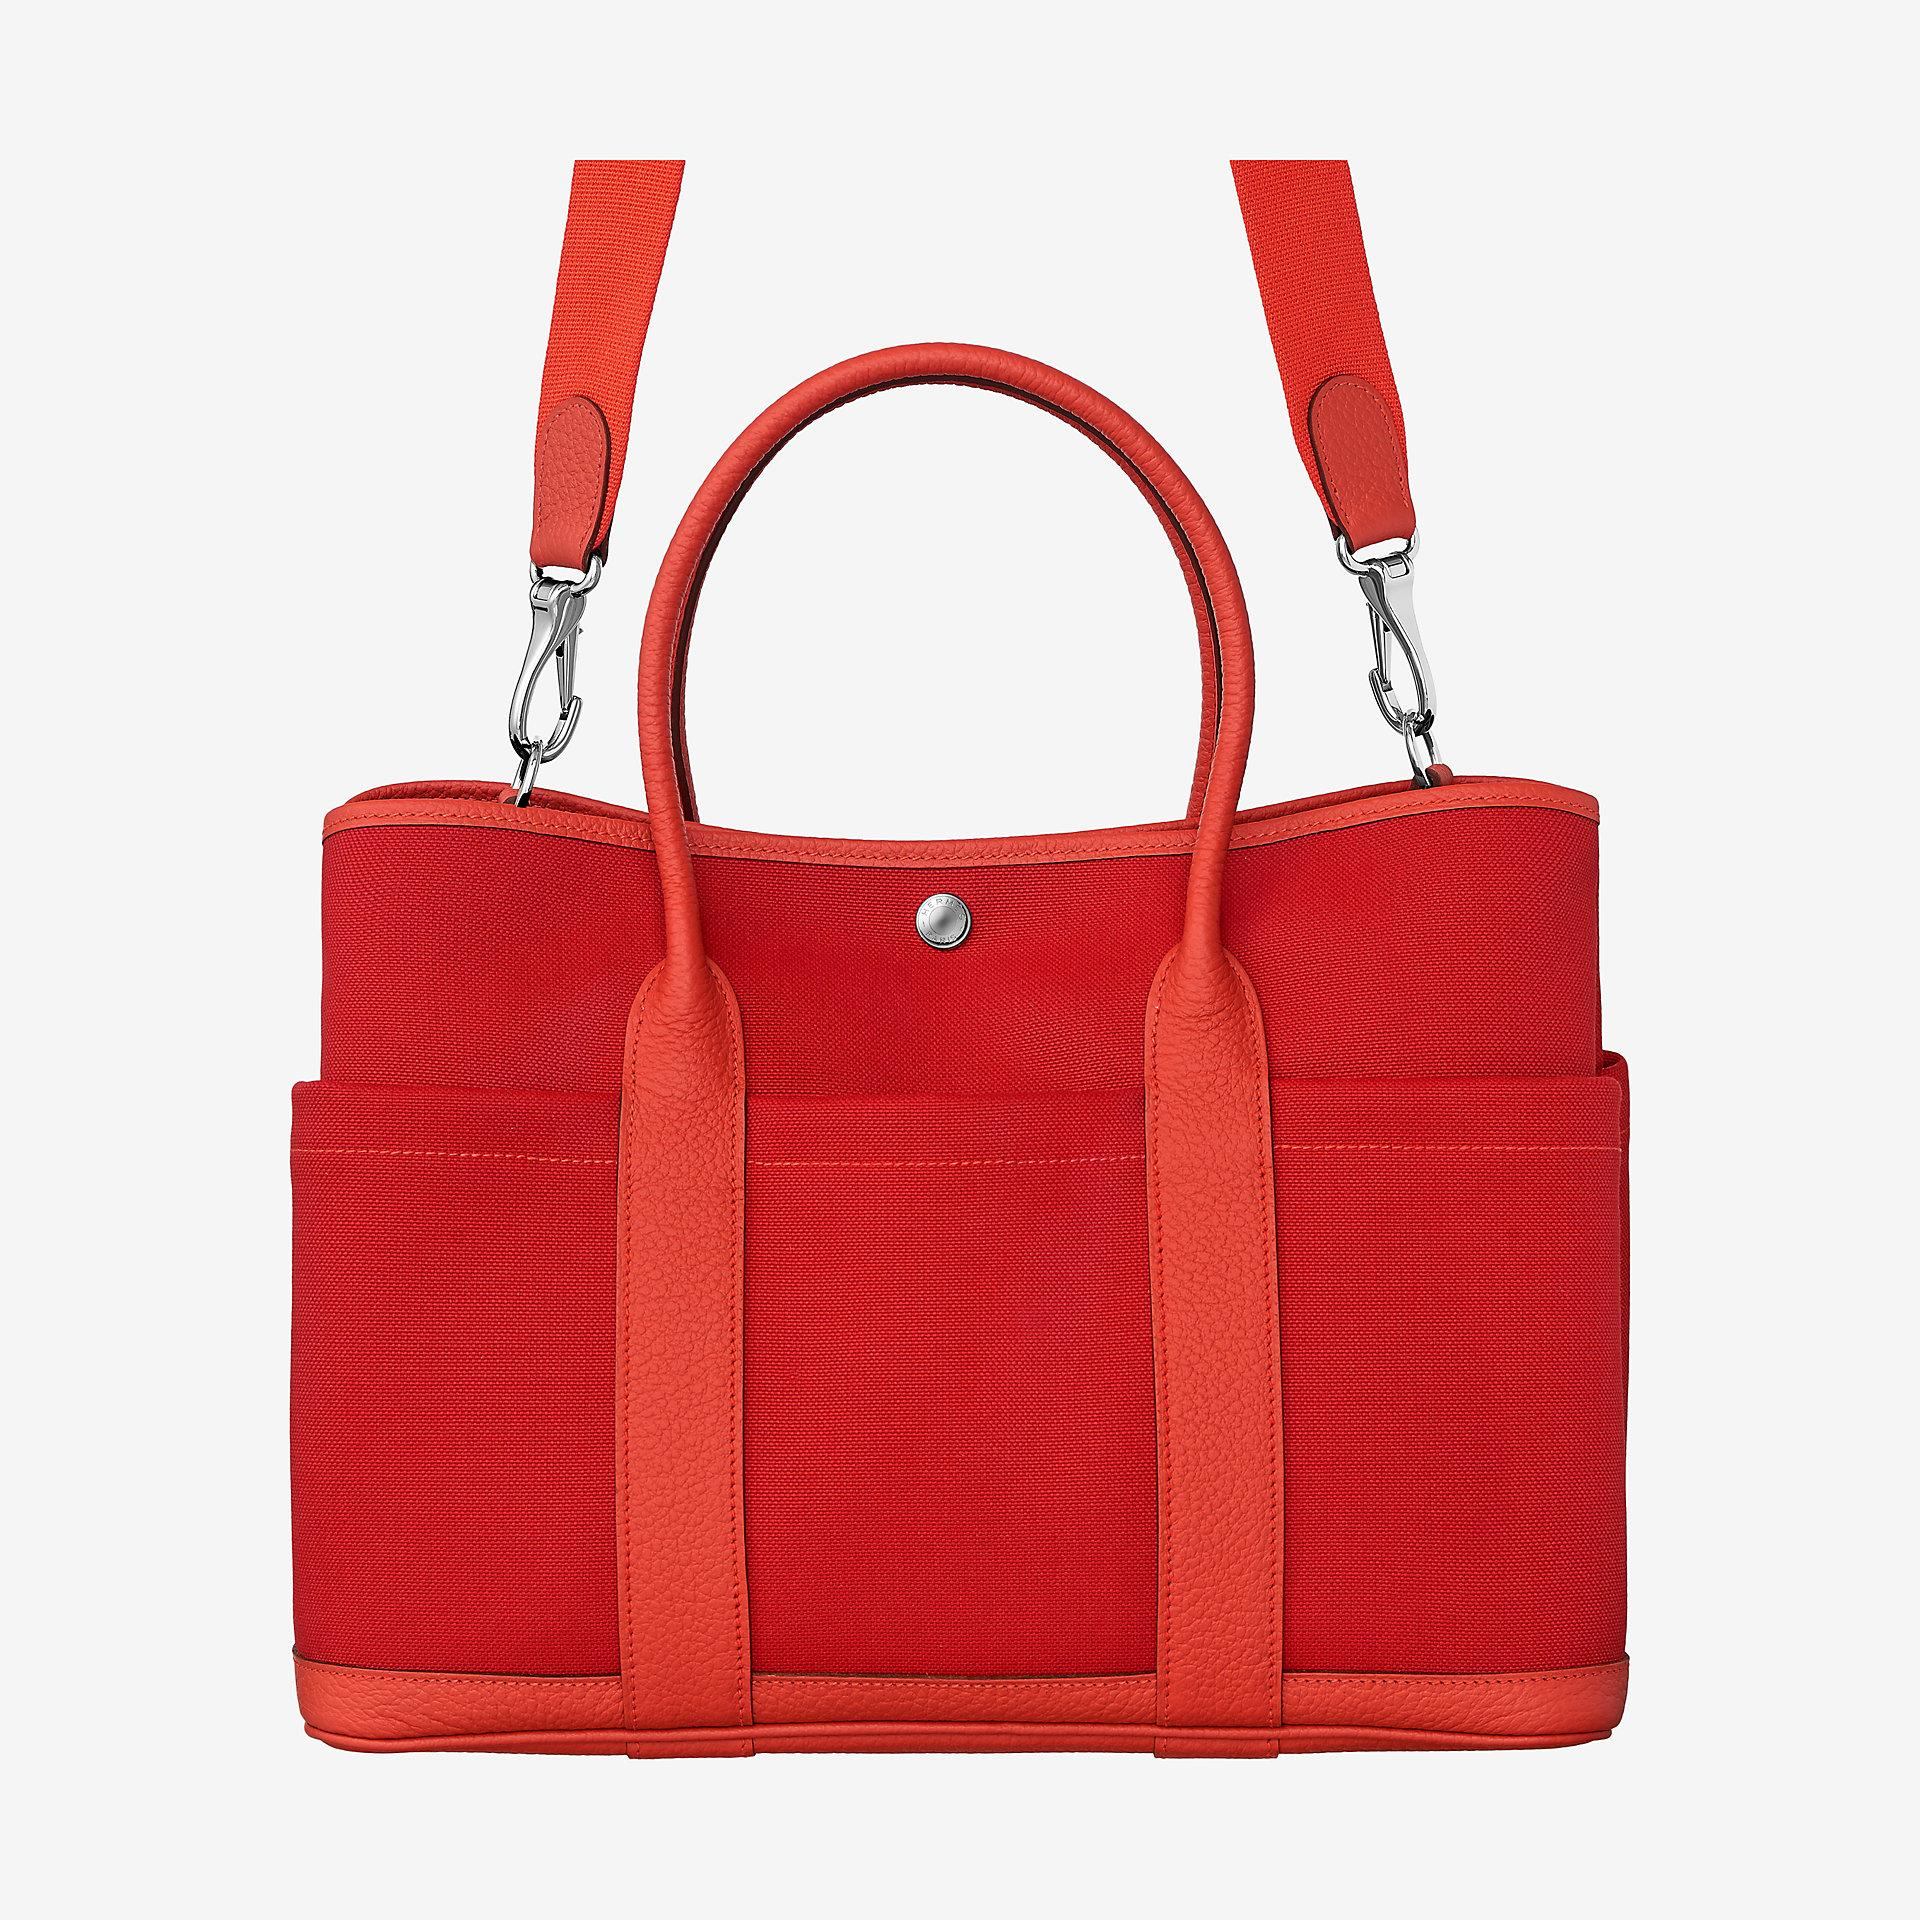 ab19a630fb05 Hermes Garden Party 36 pockets bag. Hermes bag in Country cowhide with  military canvas lining. Palladium plated Clou de Selle snap closure with  adjustable